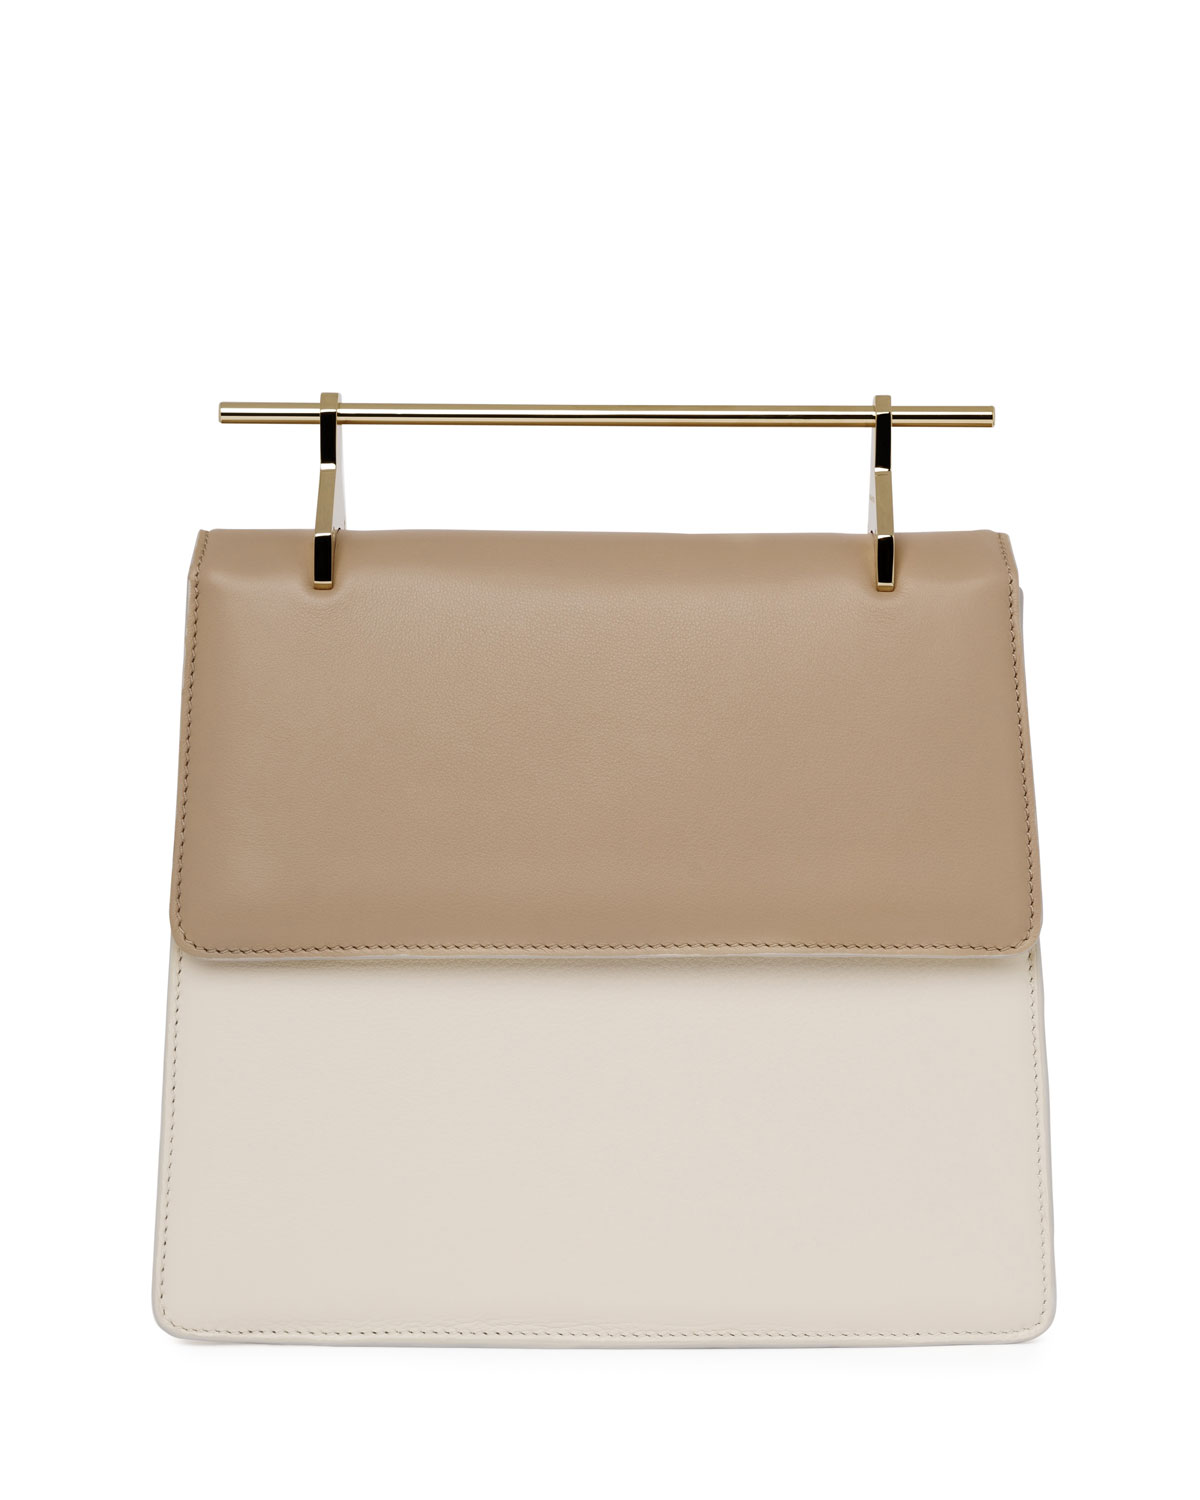 M2Malletier La Collectionneuse Leather Satchel Bag, Sand/Ivory/Gray, Brown/Ivory/Grey